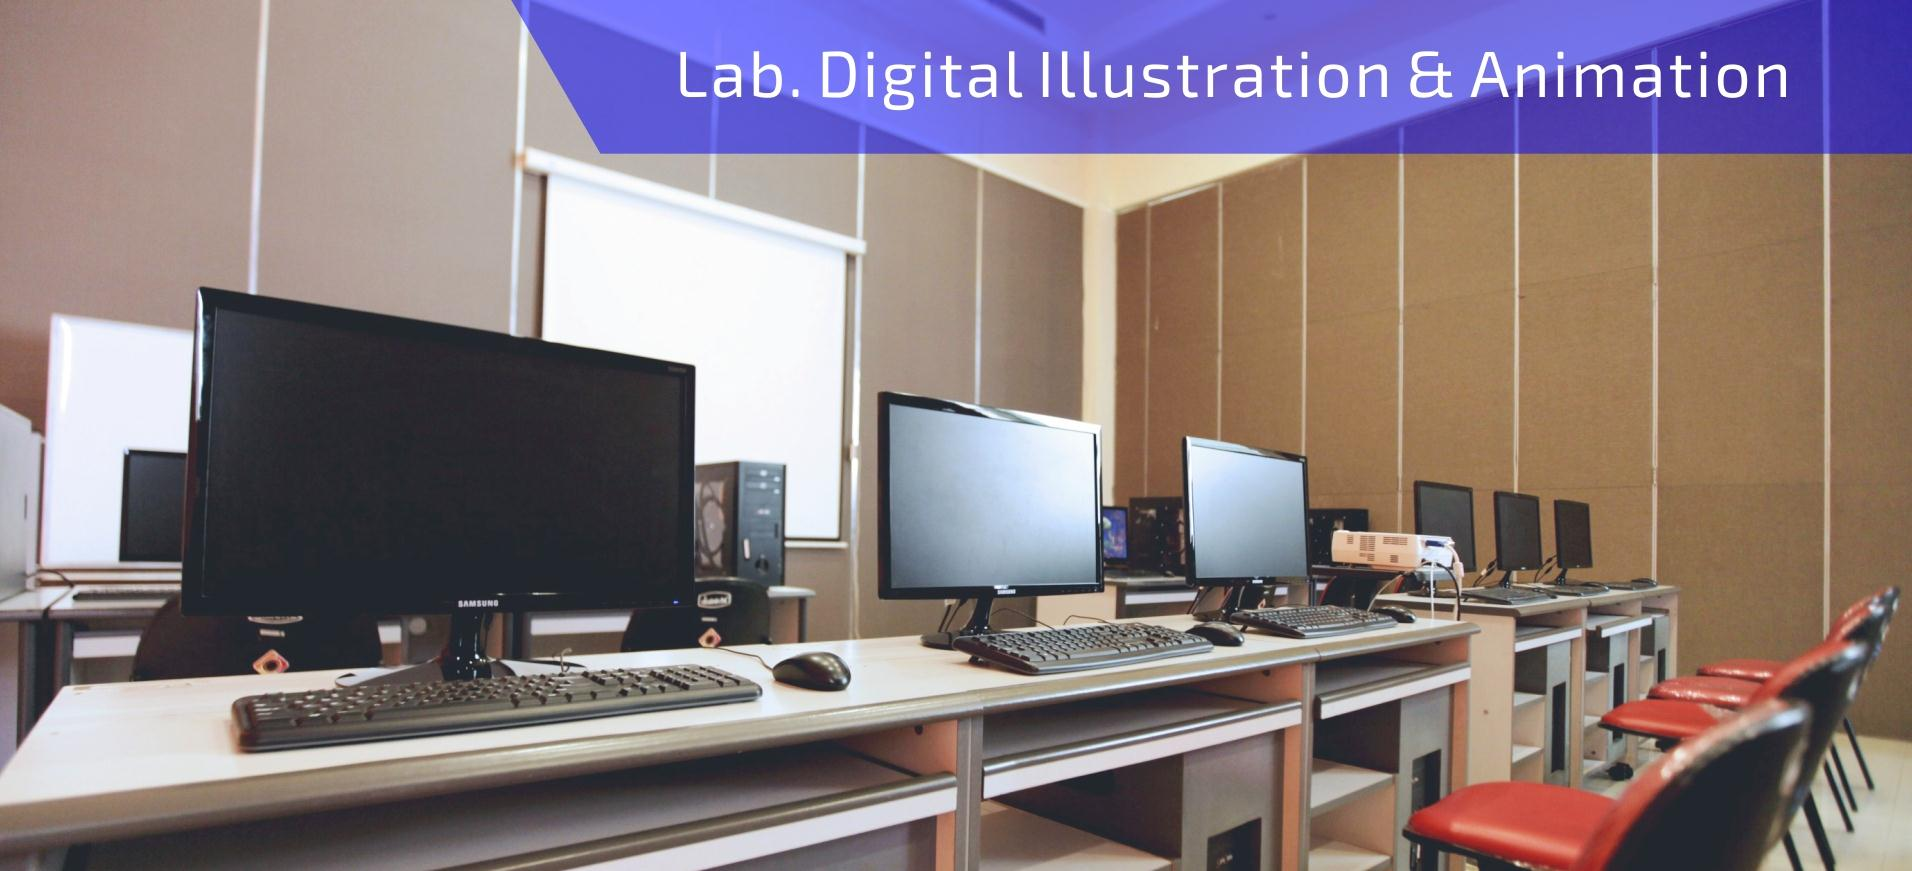 Lab. Digital Illustration & Animation